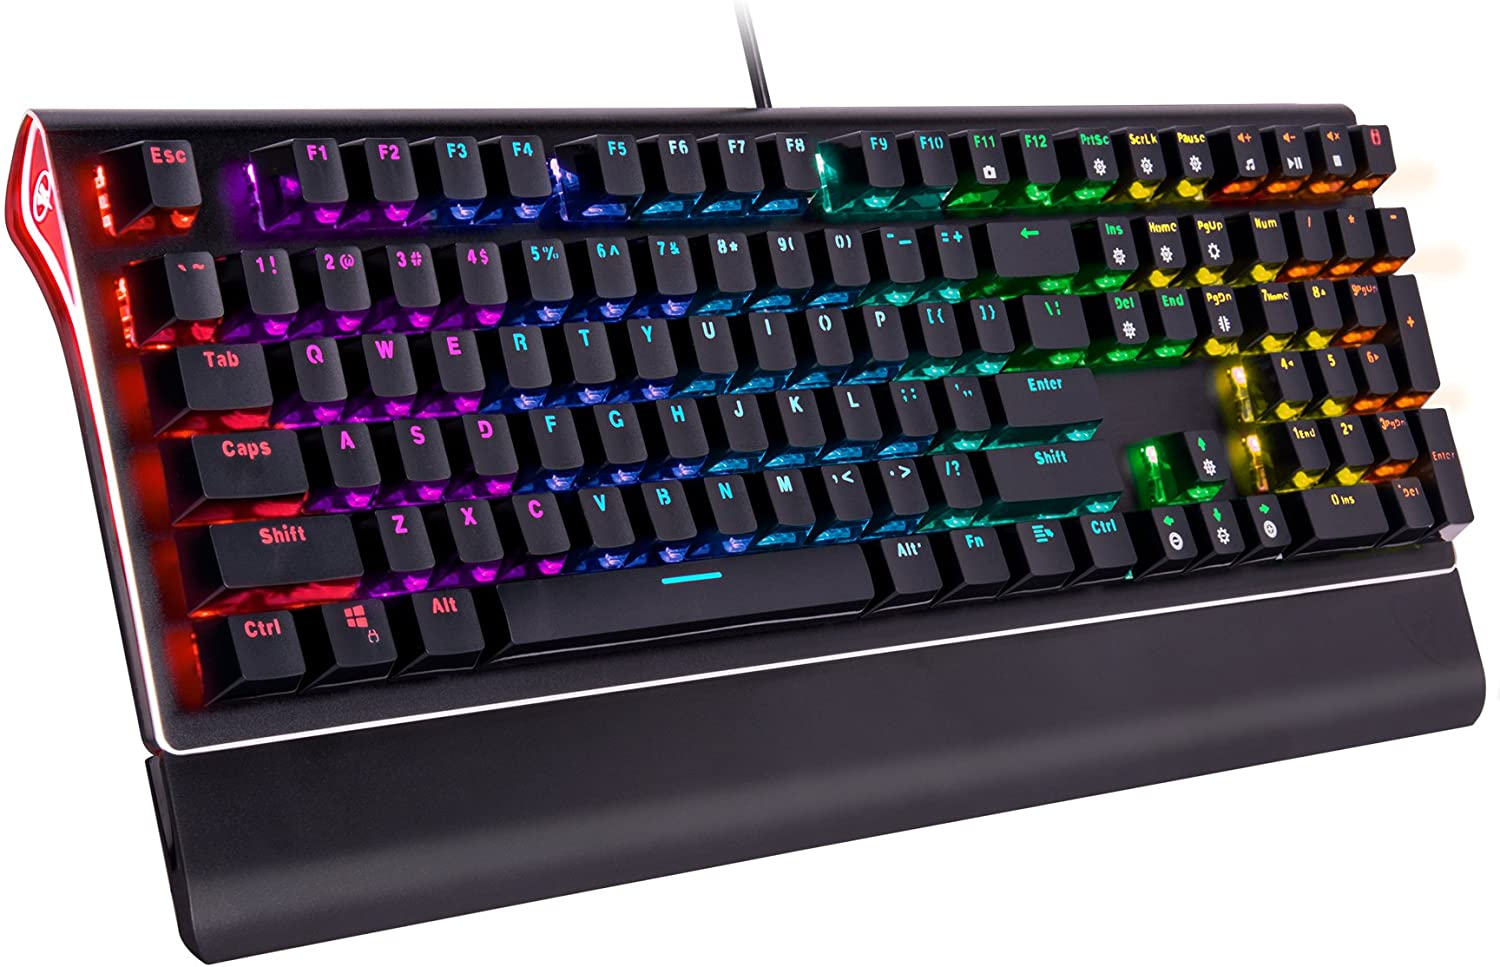 10 Best Mechanical Keyboard Under $100 - 2021 Buying Guide 1